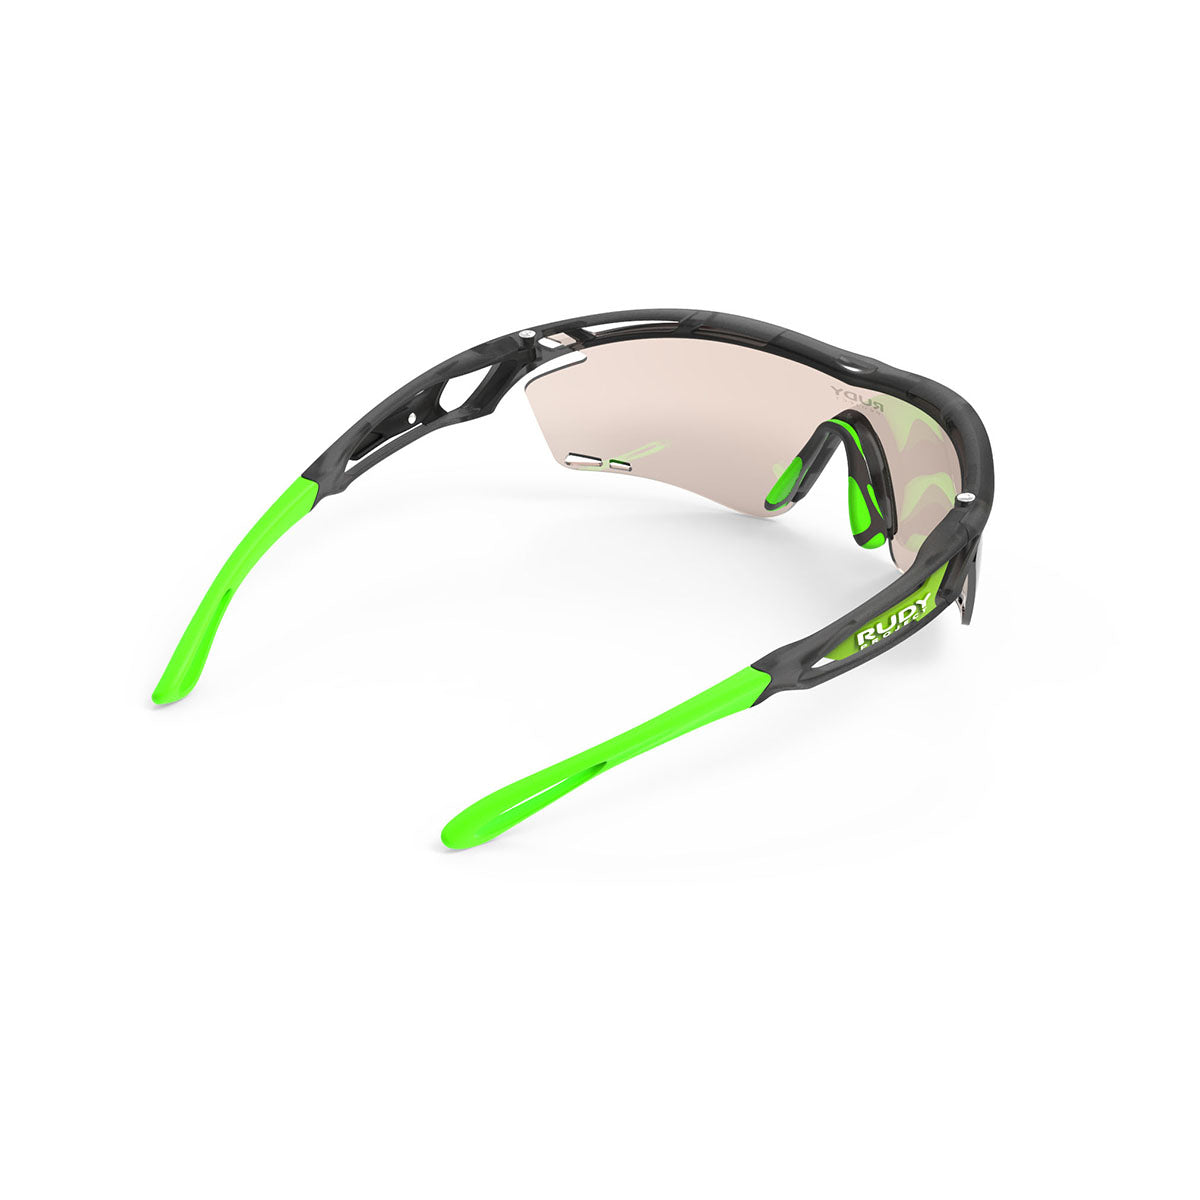 Rudy Project - Tralyx - frame color: Ice Graphite - lens color: ImpactX-2 Photochromic Clear to Laser Brown - photo angle: Top Back Angle Variant Hover Image